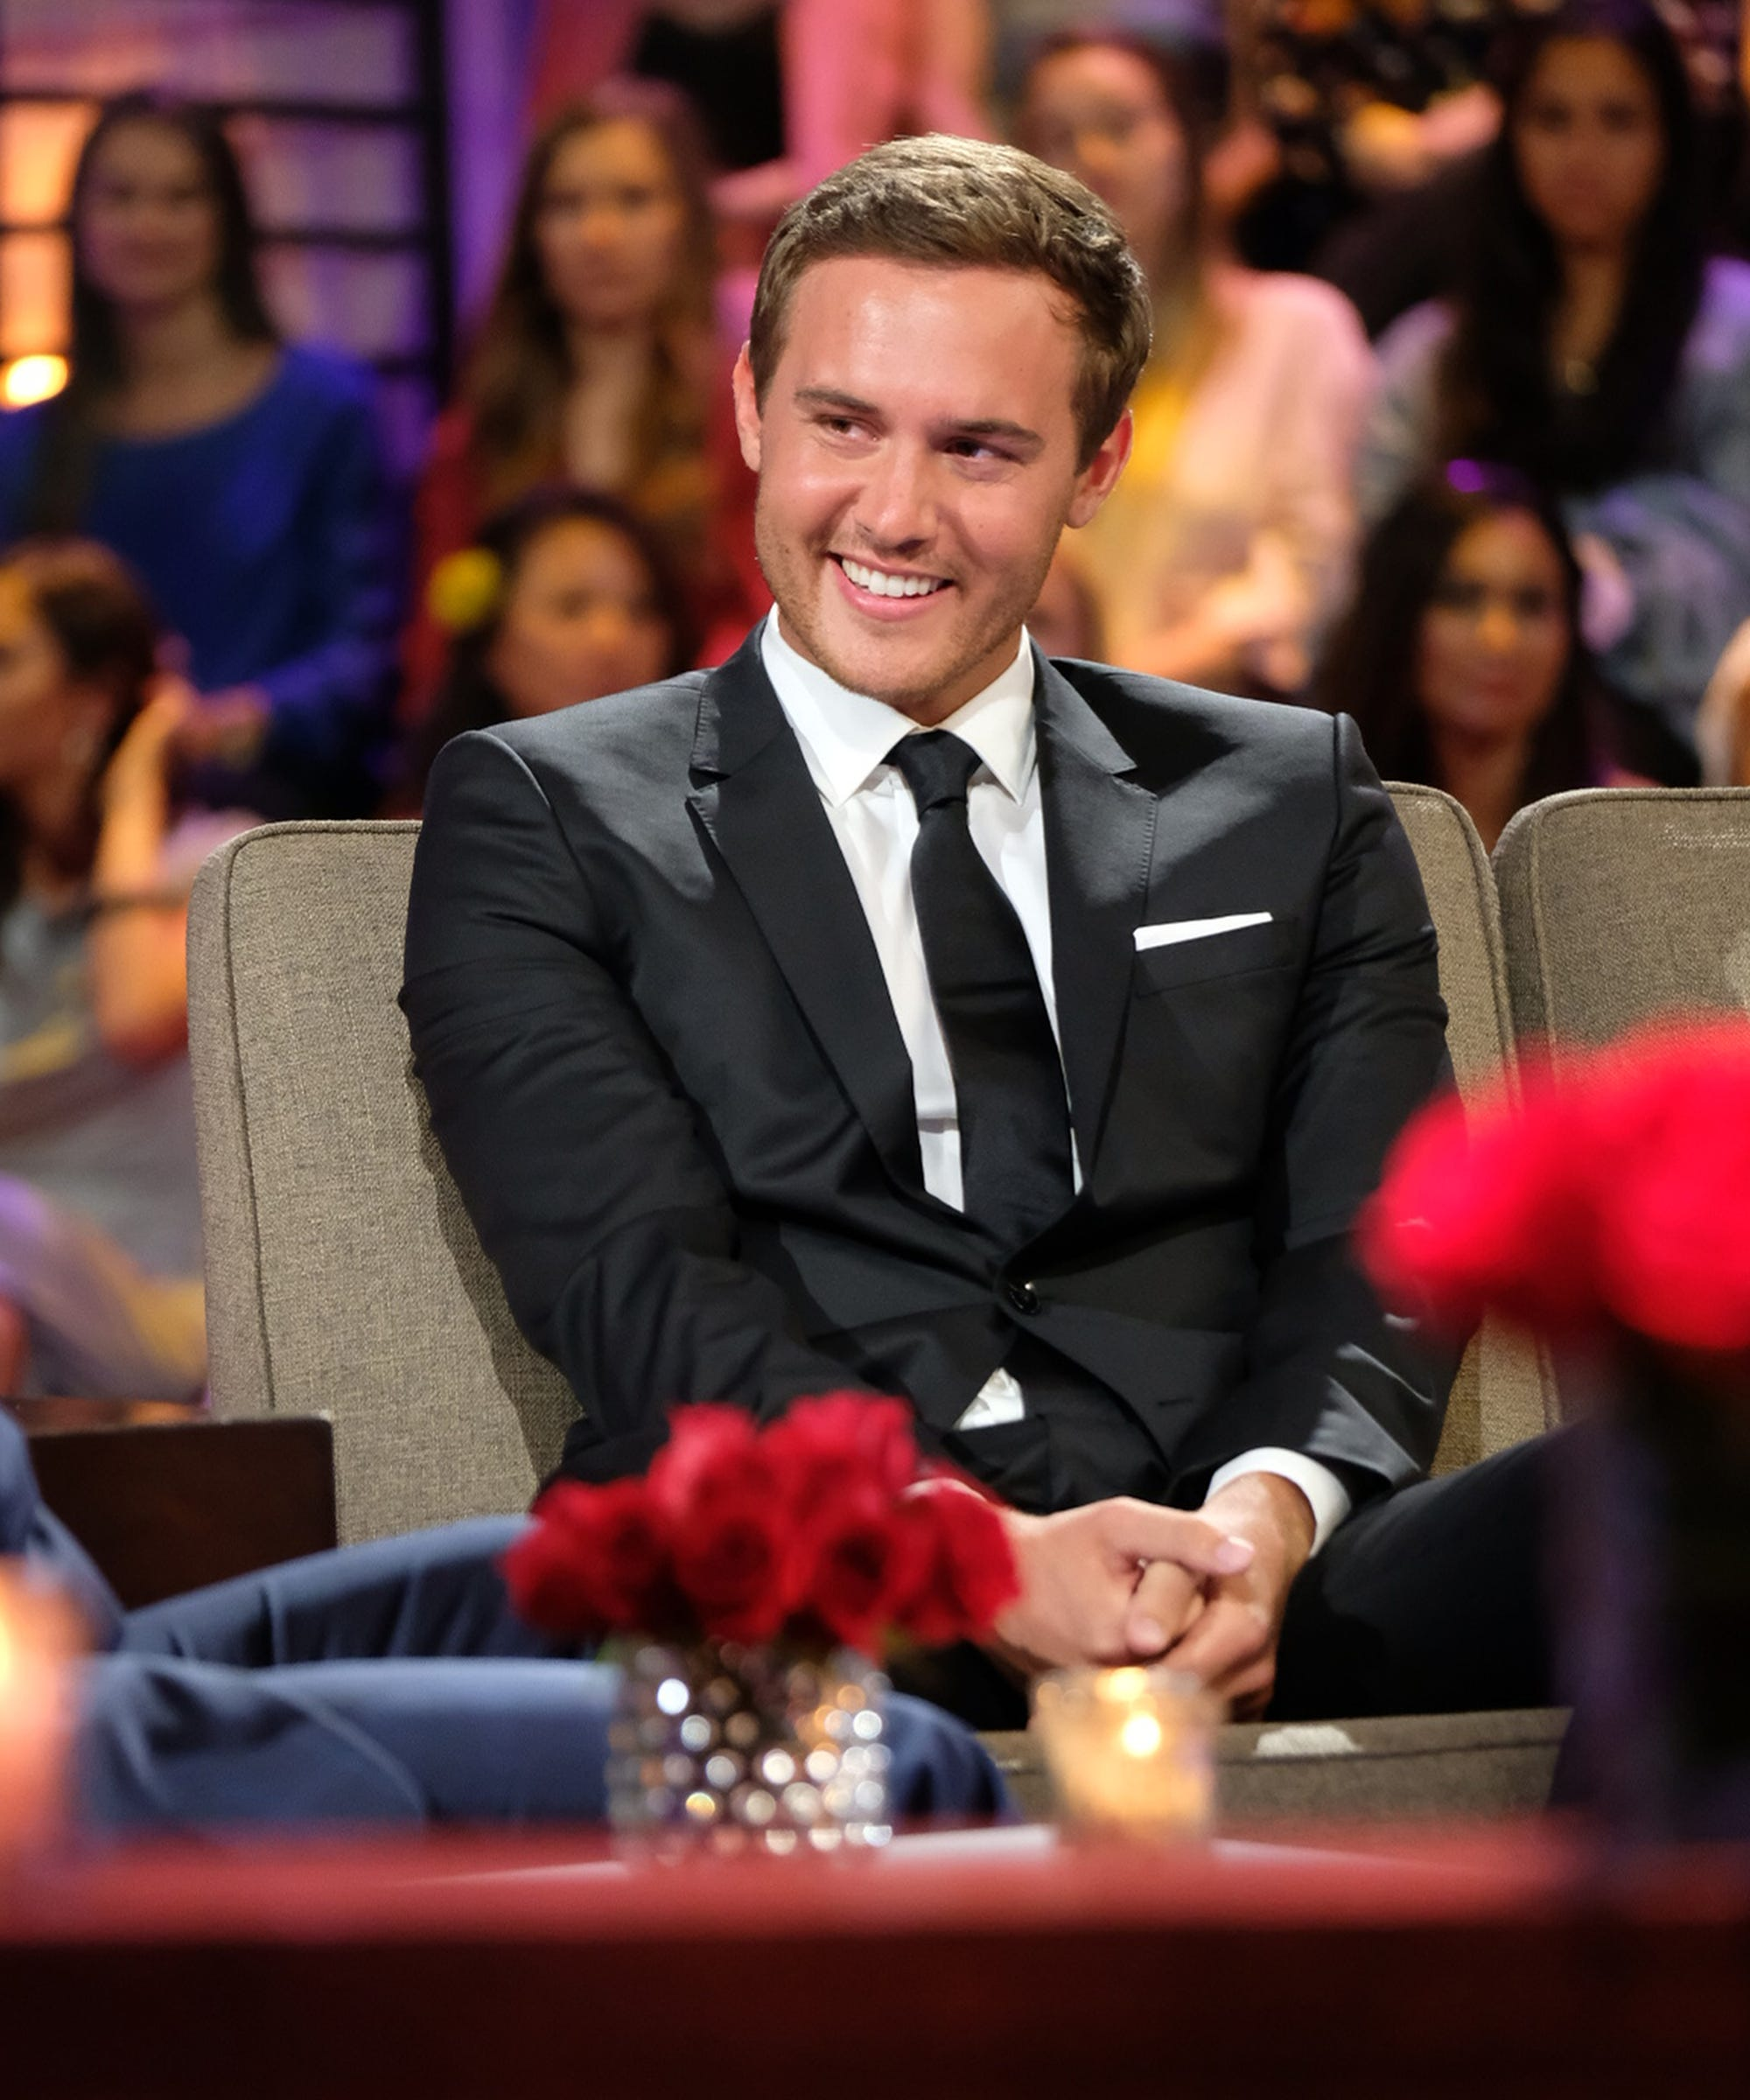 When Can We Expect The New Bachelor To Be Announced, Officially?